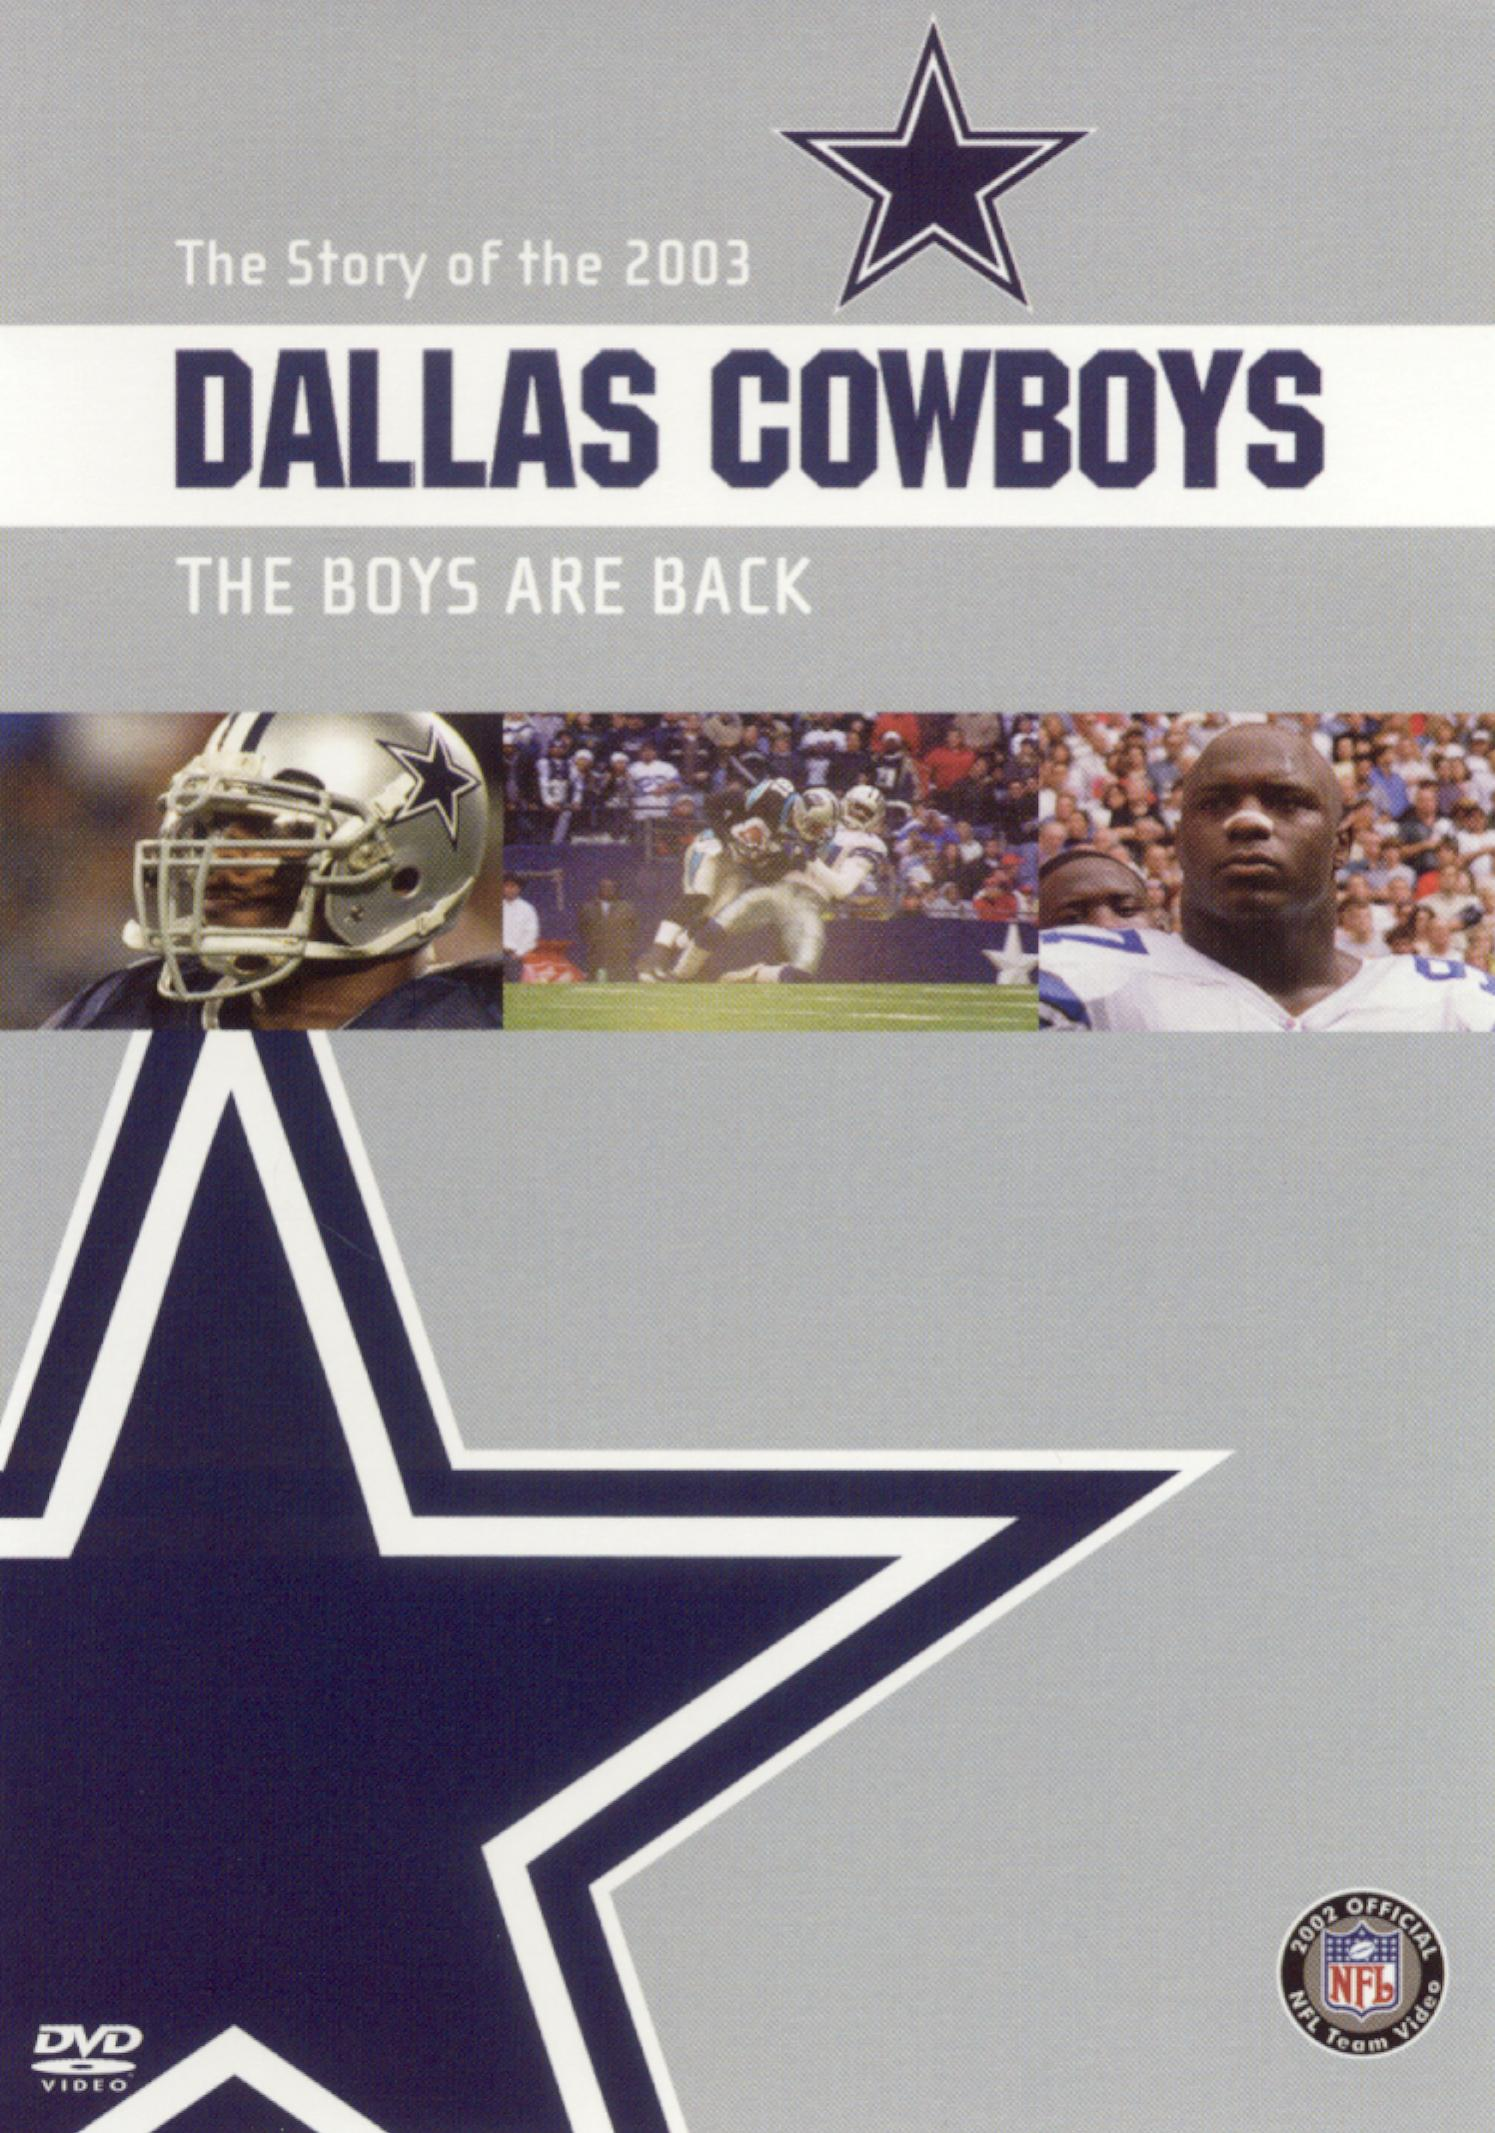 NFL: 2003 Dallas Cowboys Team Video - The Boys Are Back